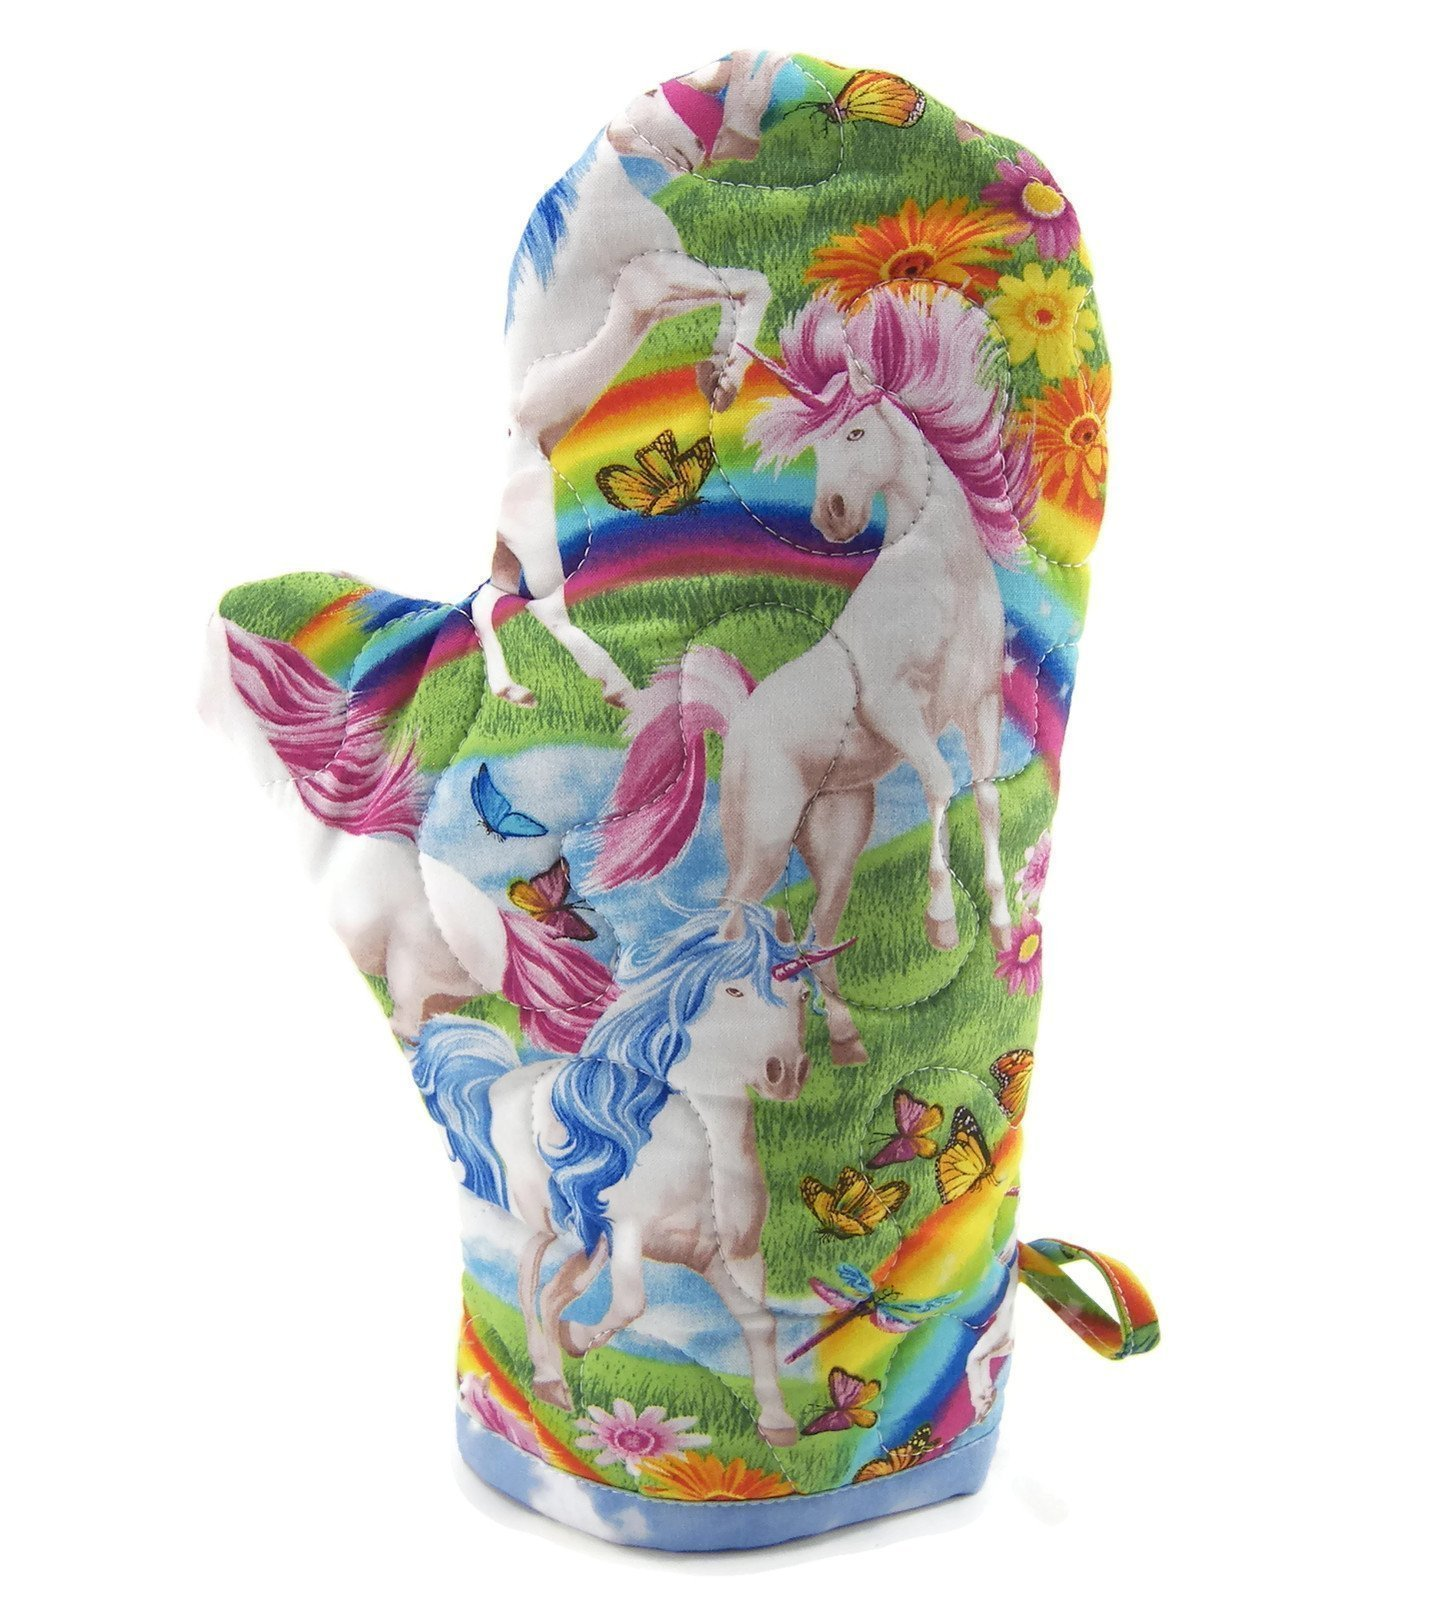 Unicorns and Rainbows Oven Mitt - Insulated Pot Holder - Cotton Fabric 3